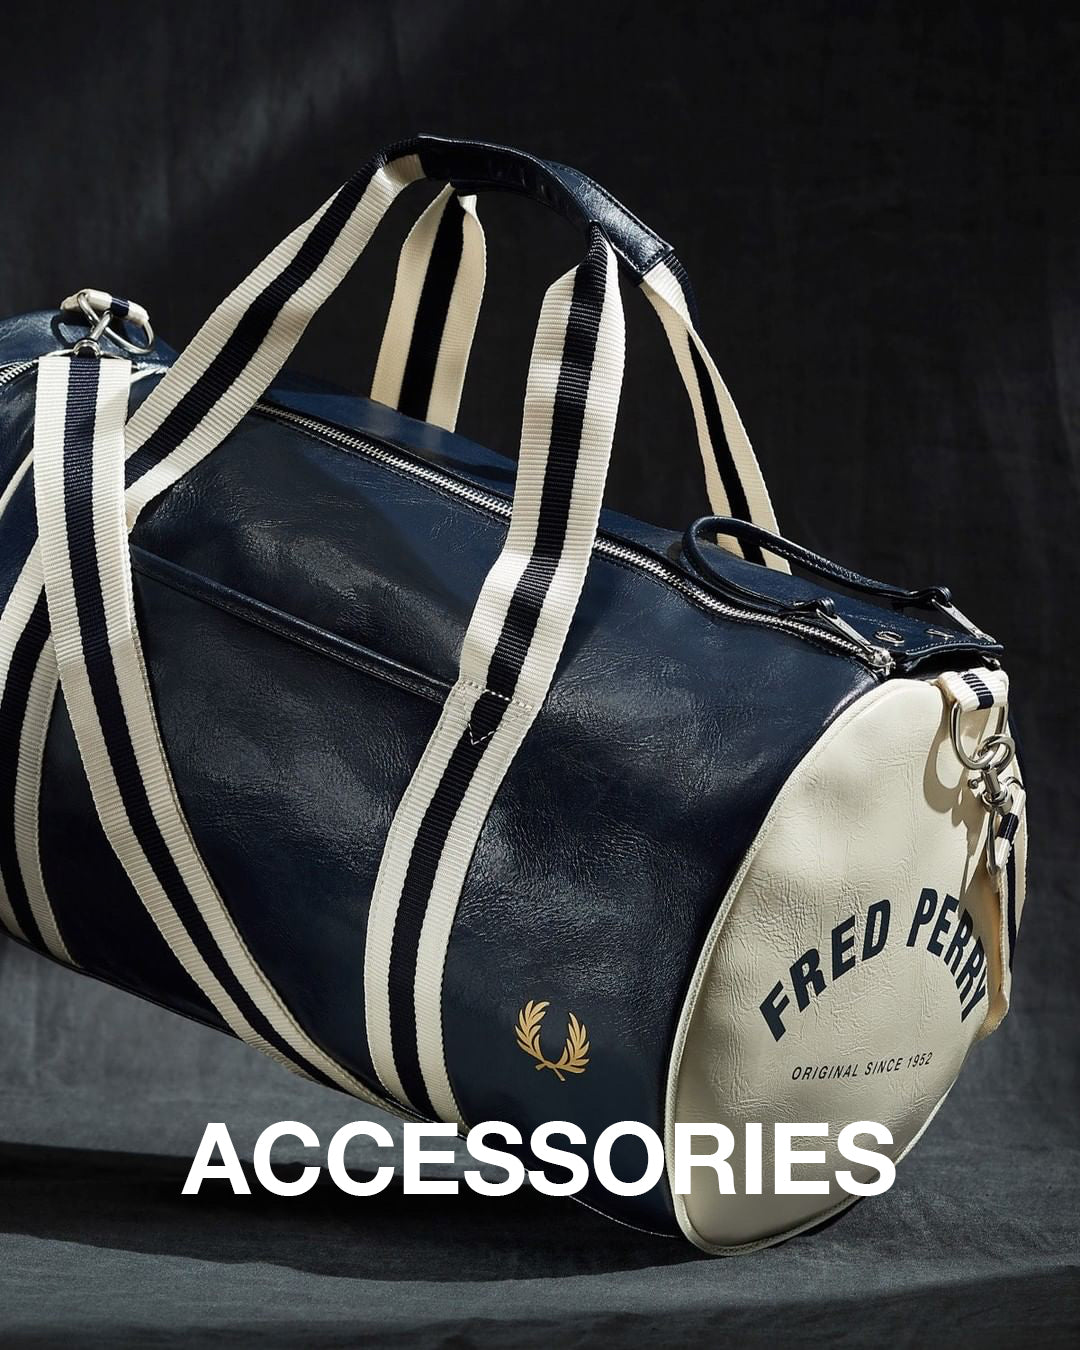 https://www.707.co.id/collections/fred-perry-bags-collections